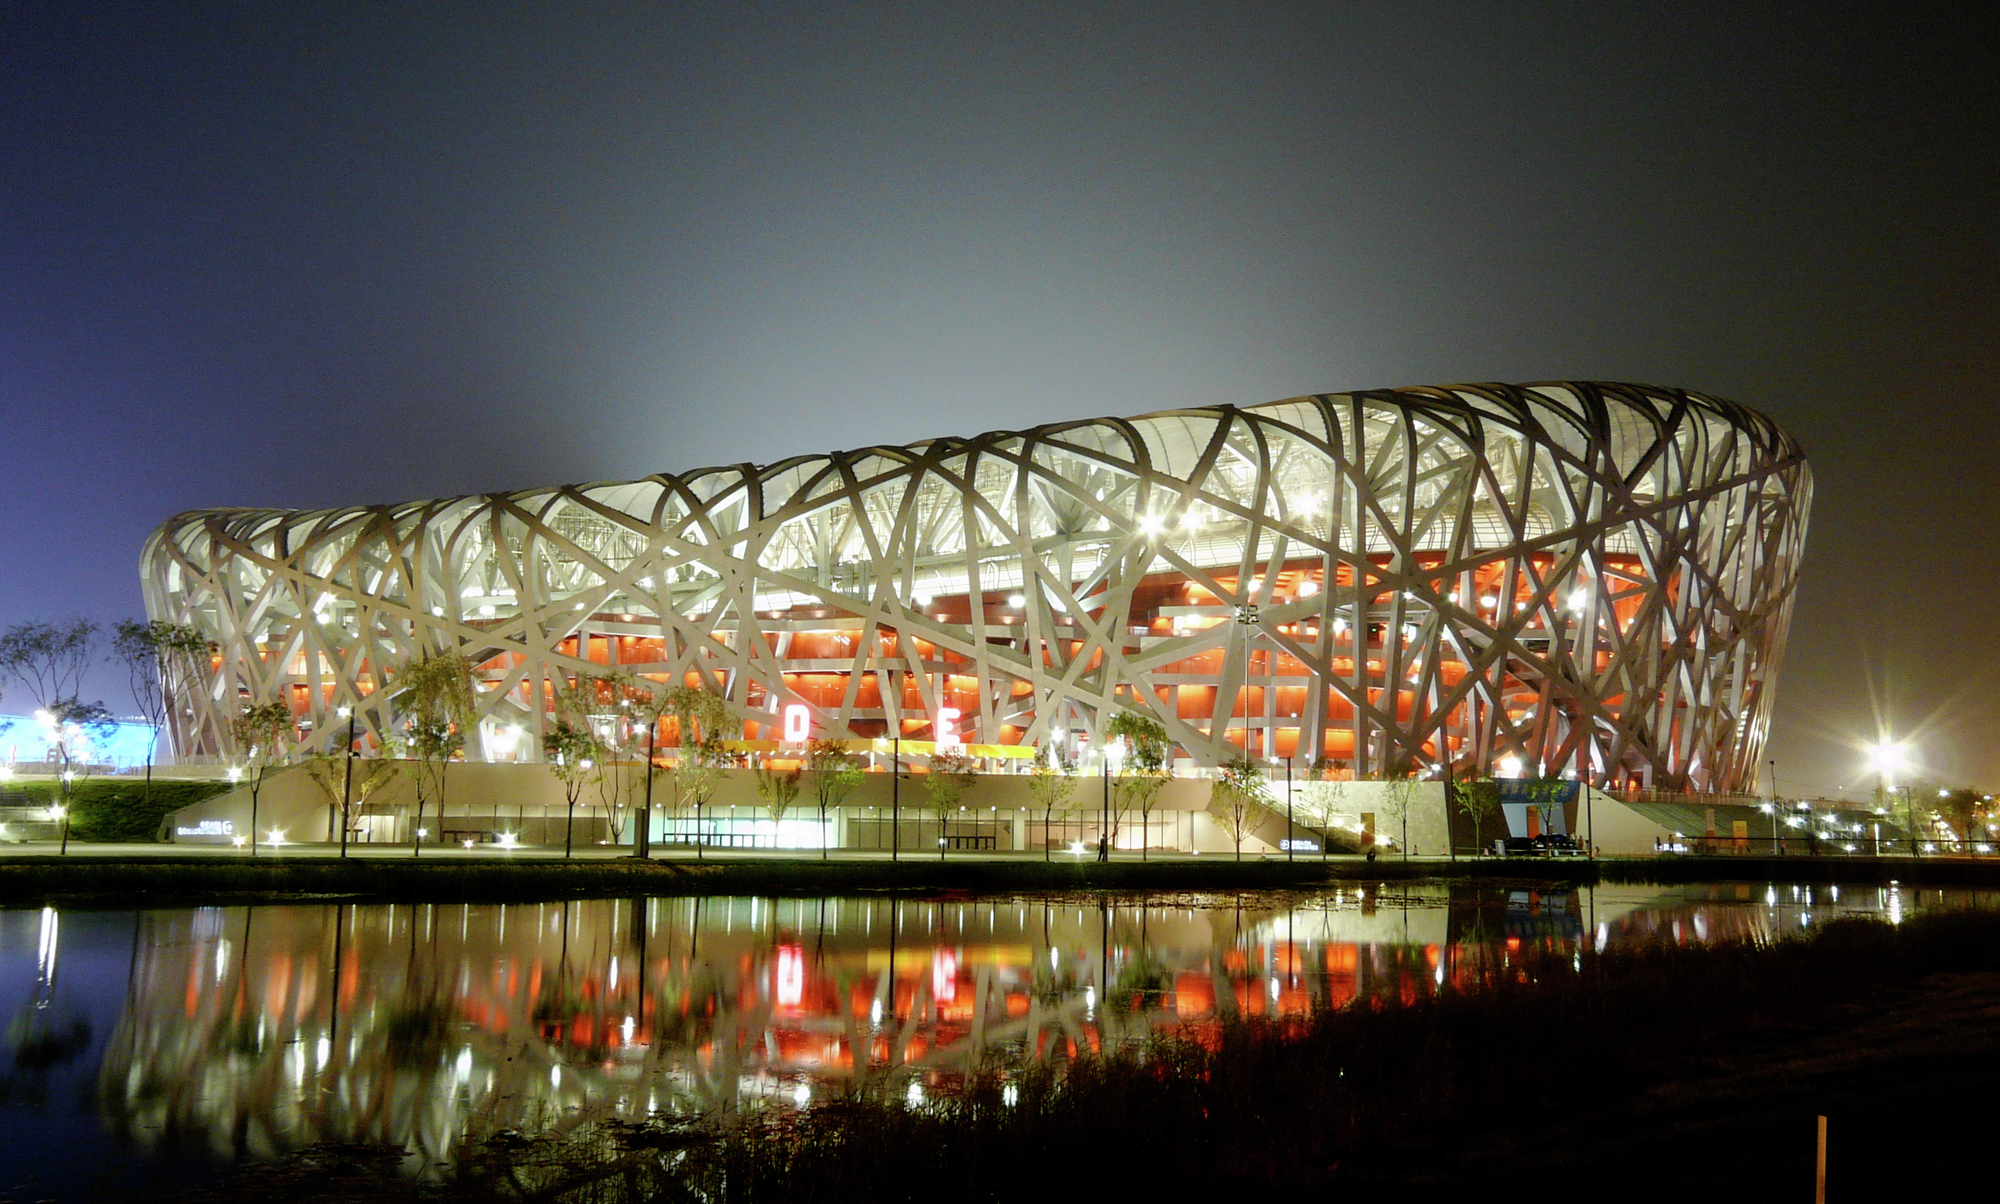 Education stadia and arenas sports and leisure healthcare residential - Iaks Selects 8 Outstanding Sports Leisure Facilities As All Time Best Beijing National Stadium